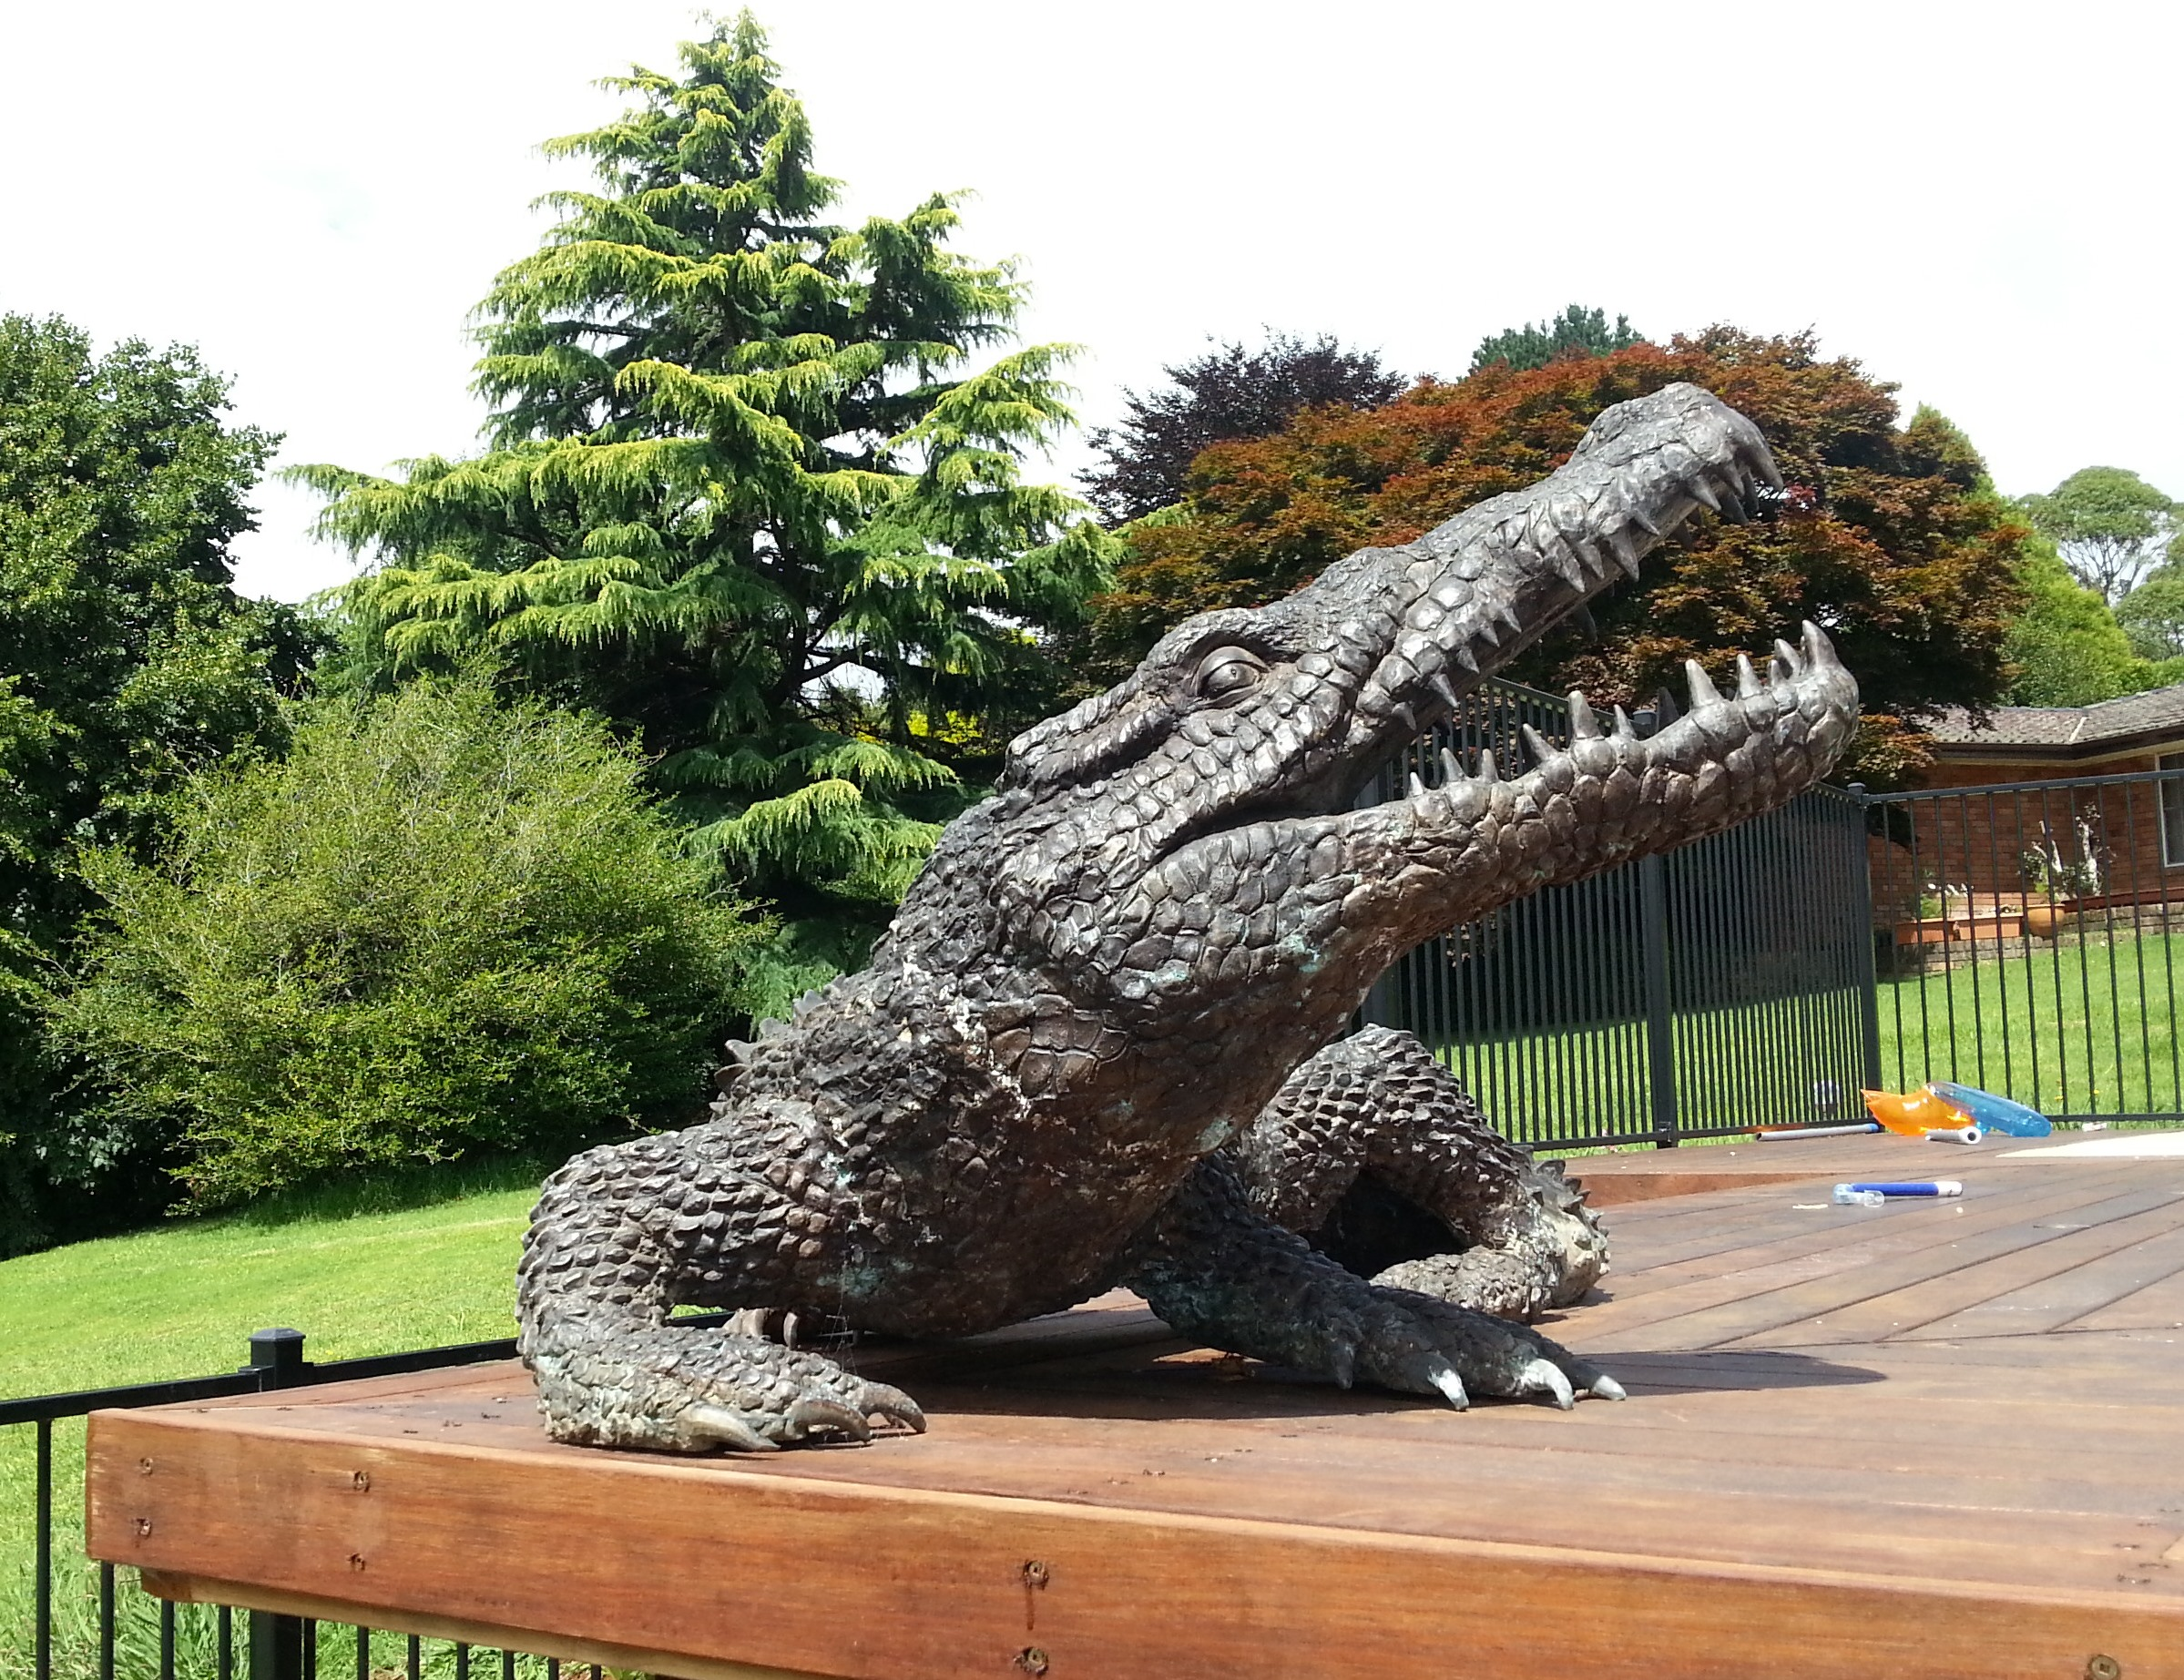 Hardwood Decking crocodile